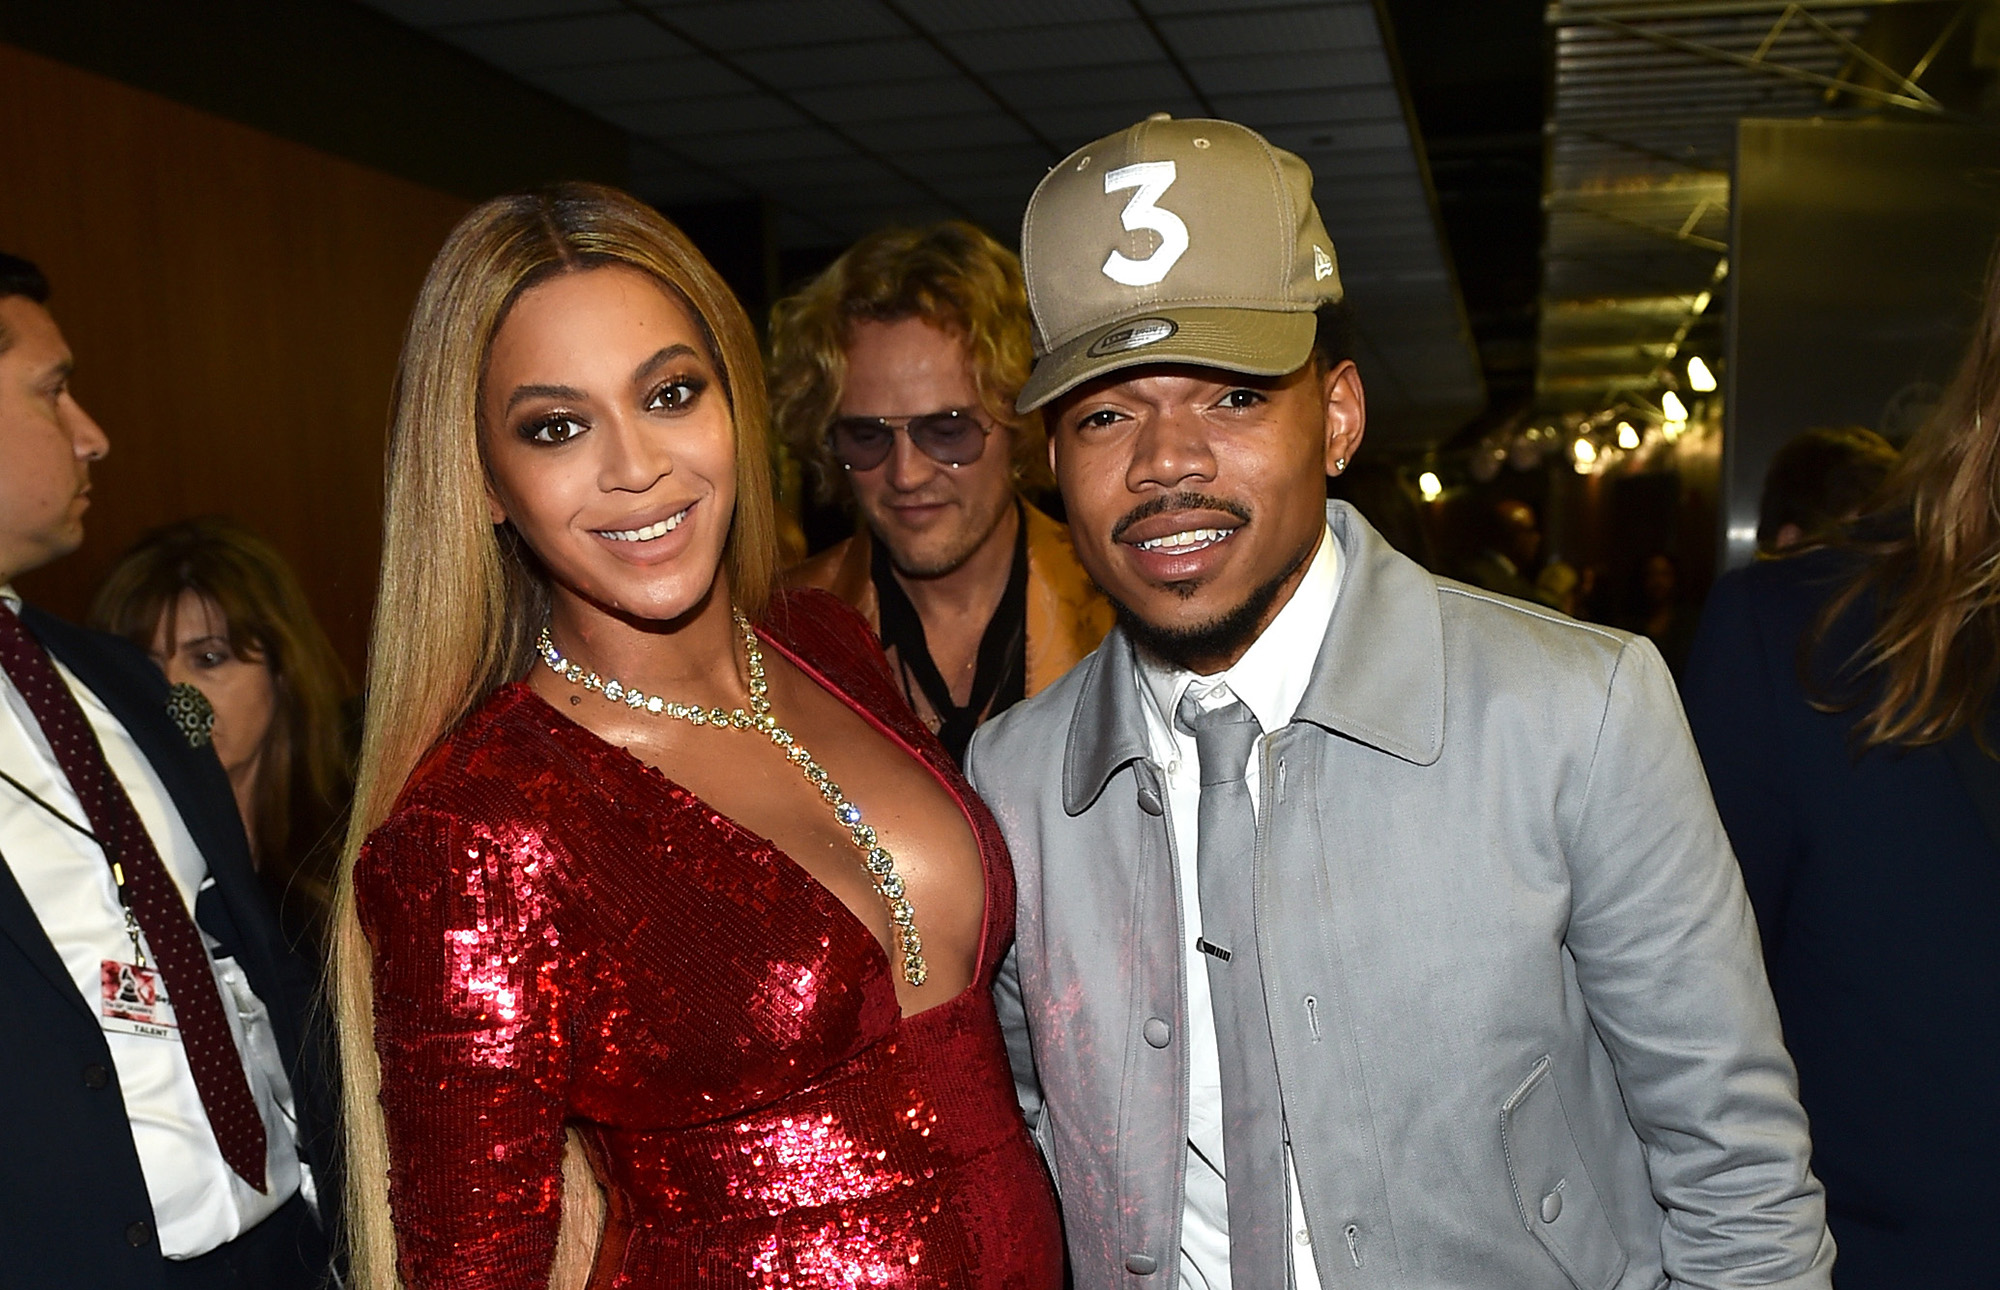 Beyonce (L) and Chance the Rapper attend The 59th GRAMMY Awards at STAPLES Center on February 12, 2017 in Los Angeles, California.